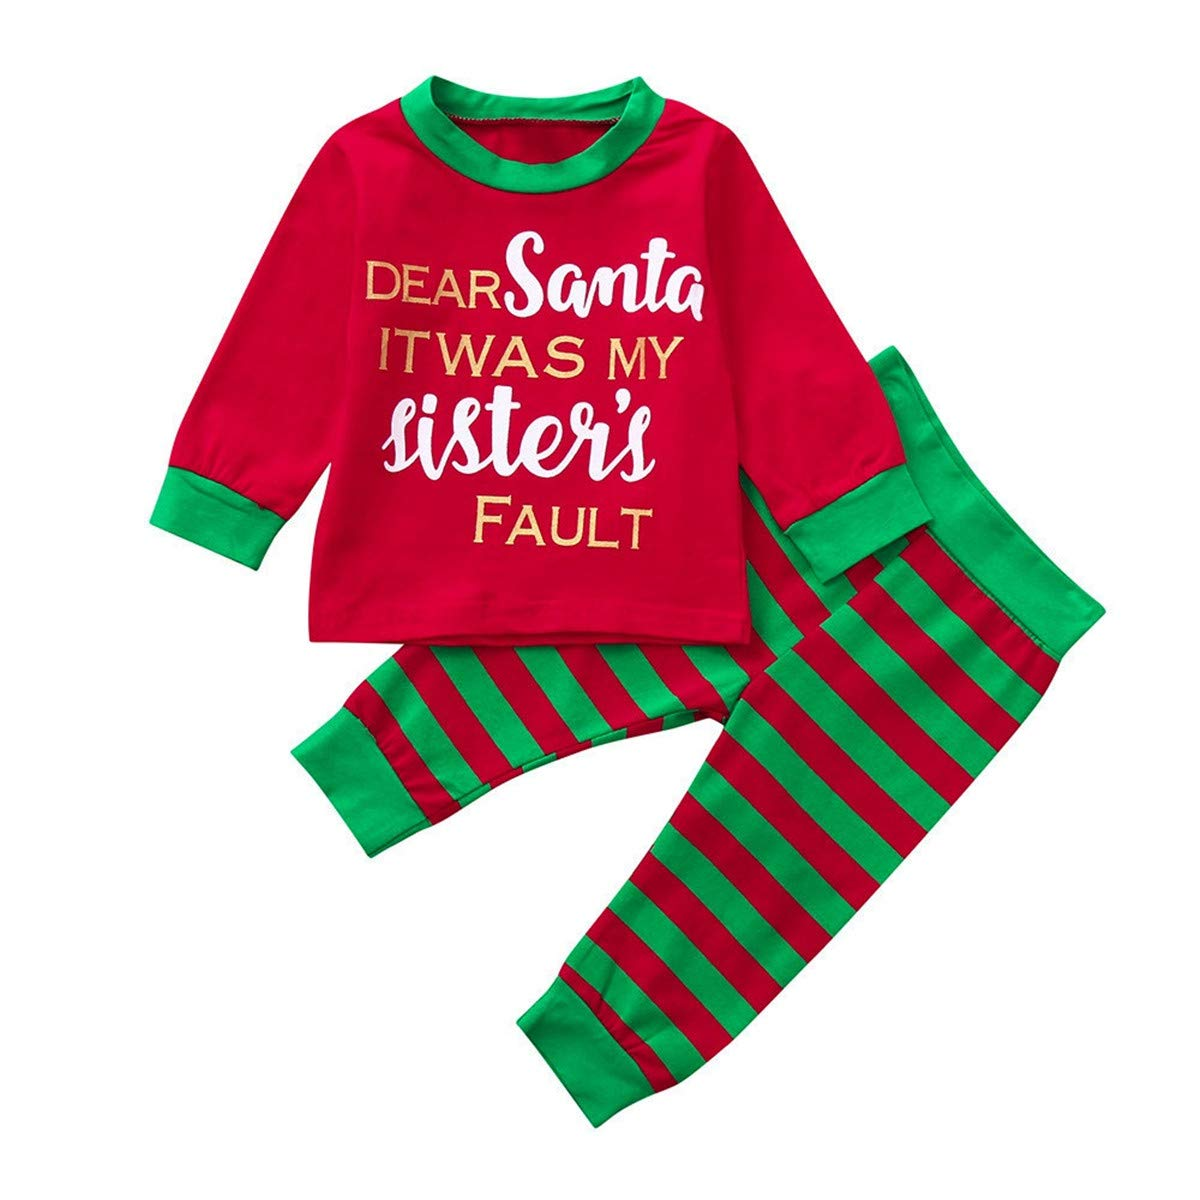 Sunnywill Baby MäDchen Jungen Bekleidung Brother & Sister Boys Weihnachtsbrief Tops + Stripe Pants Clothes Sets